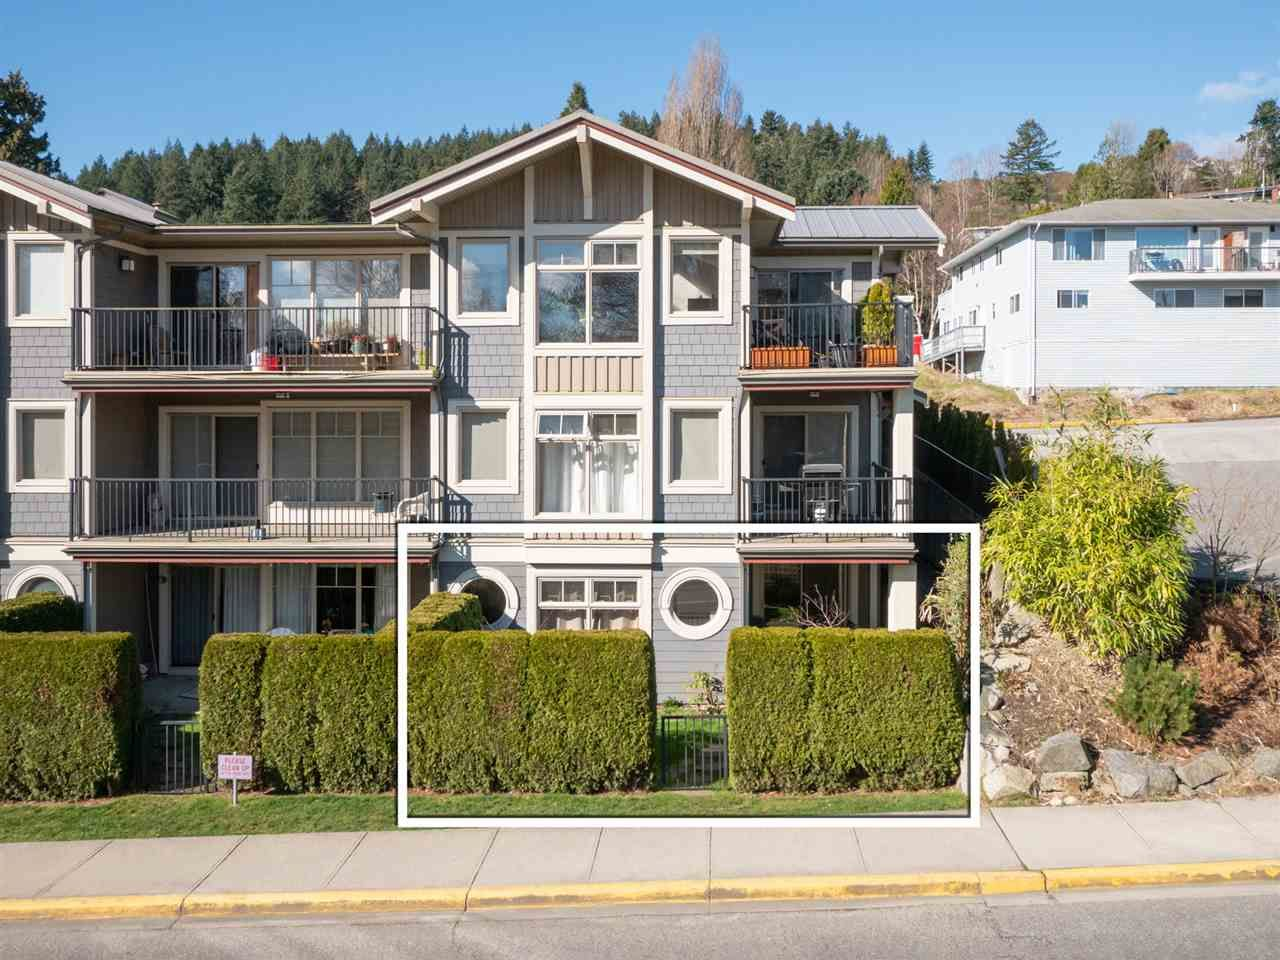 Main Photo: 103 414 GOWER POINT Road in Gibsons: Gibsons & Area Condo for sale (Sunshine Coast)  : MLS®# R2553406